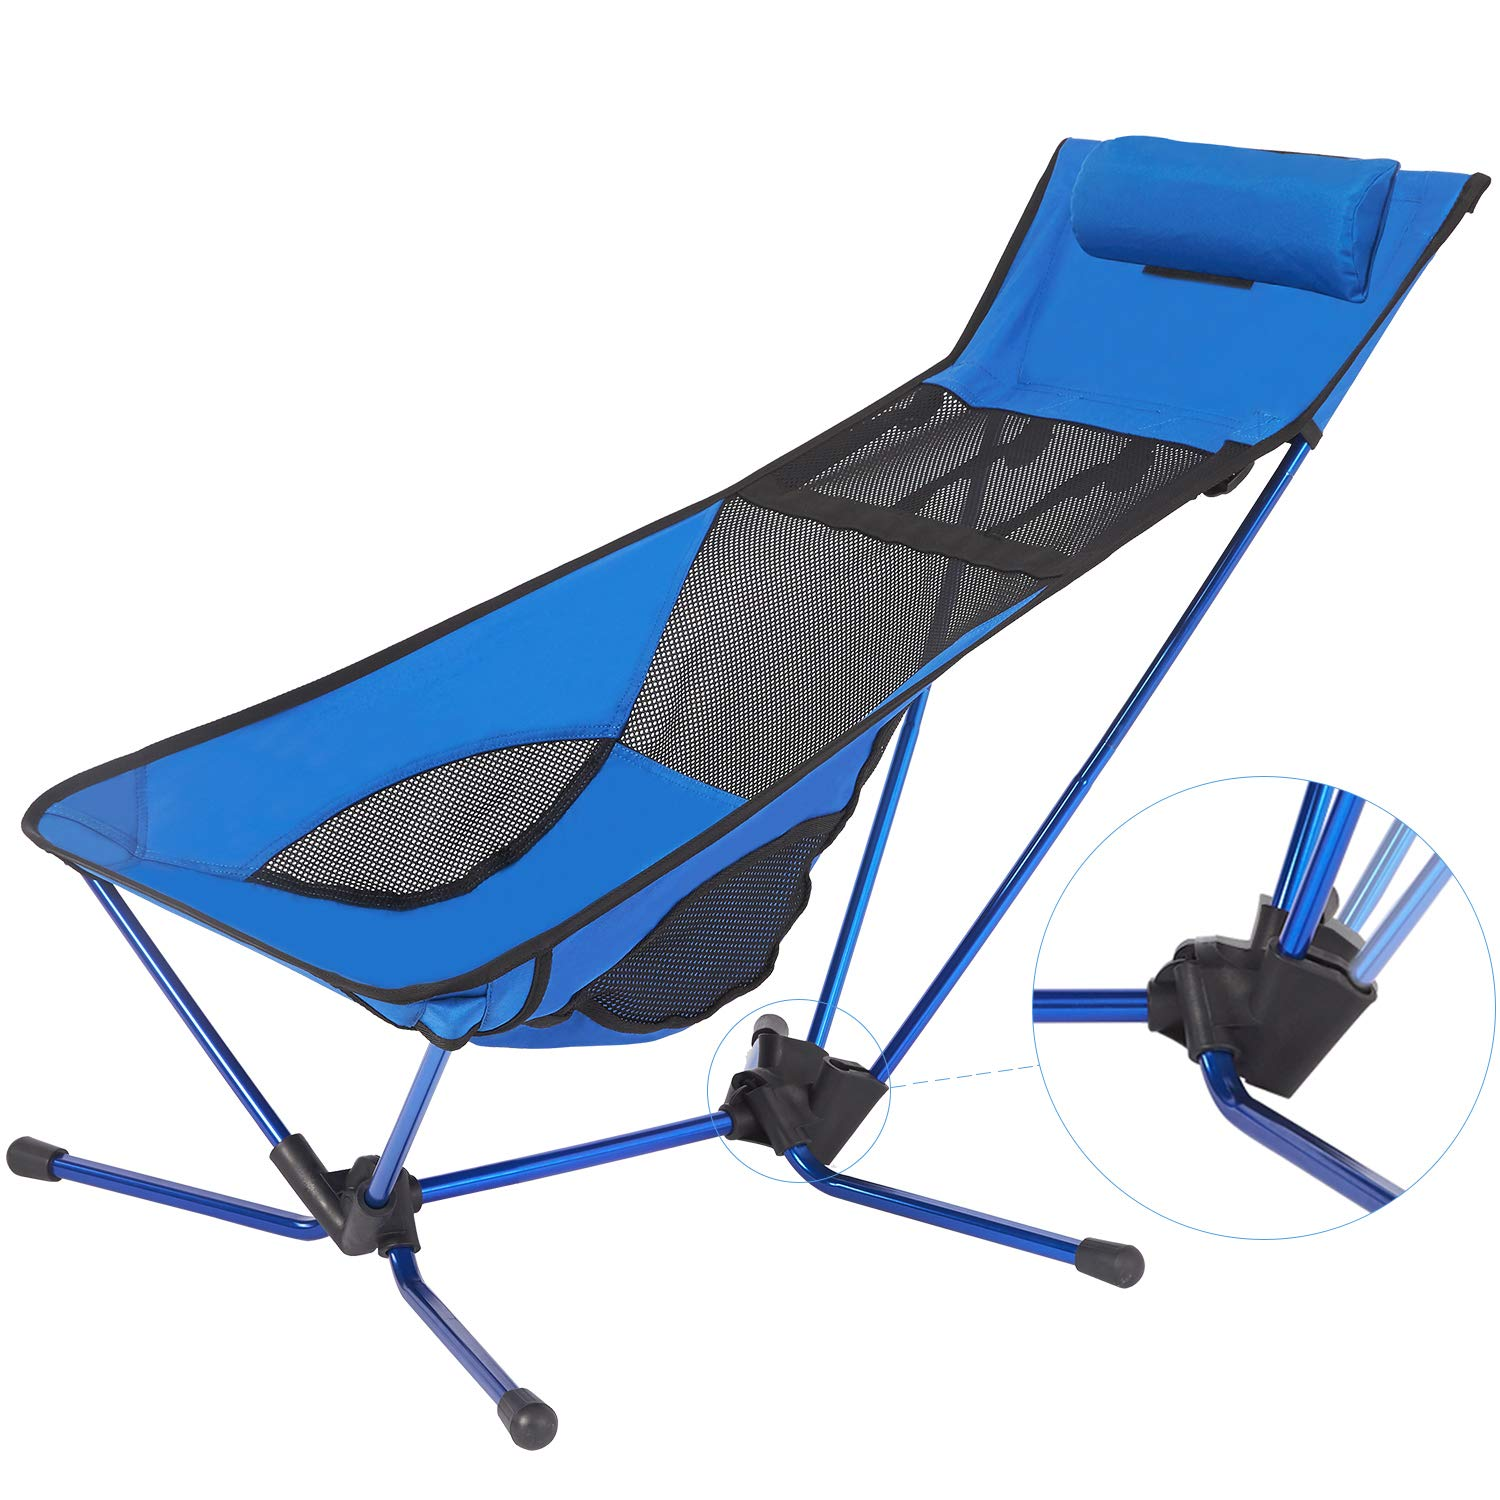 Lightweight Folding Angle-Adjustable Beach Camping Chair with Headrest  Helinox Backpacking Chair